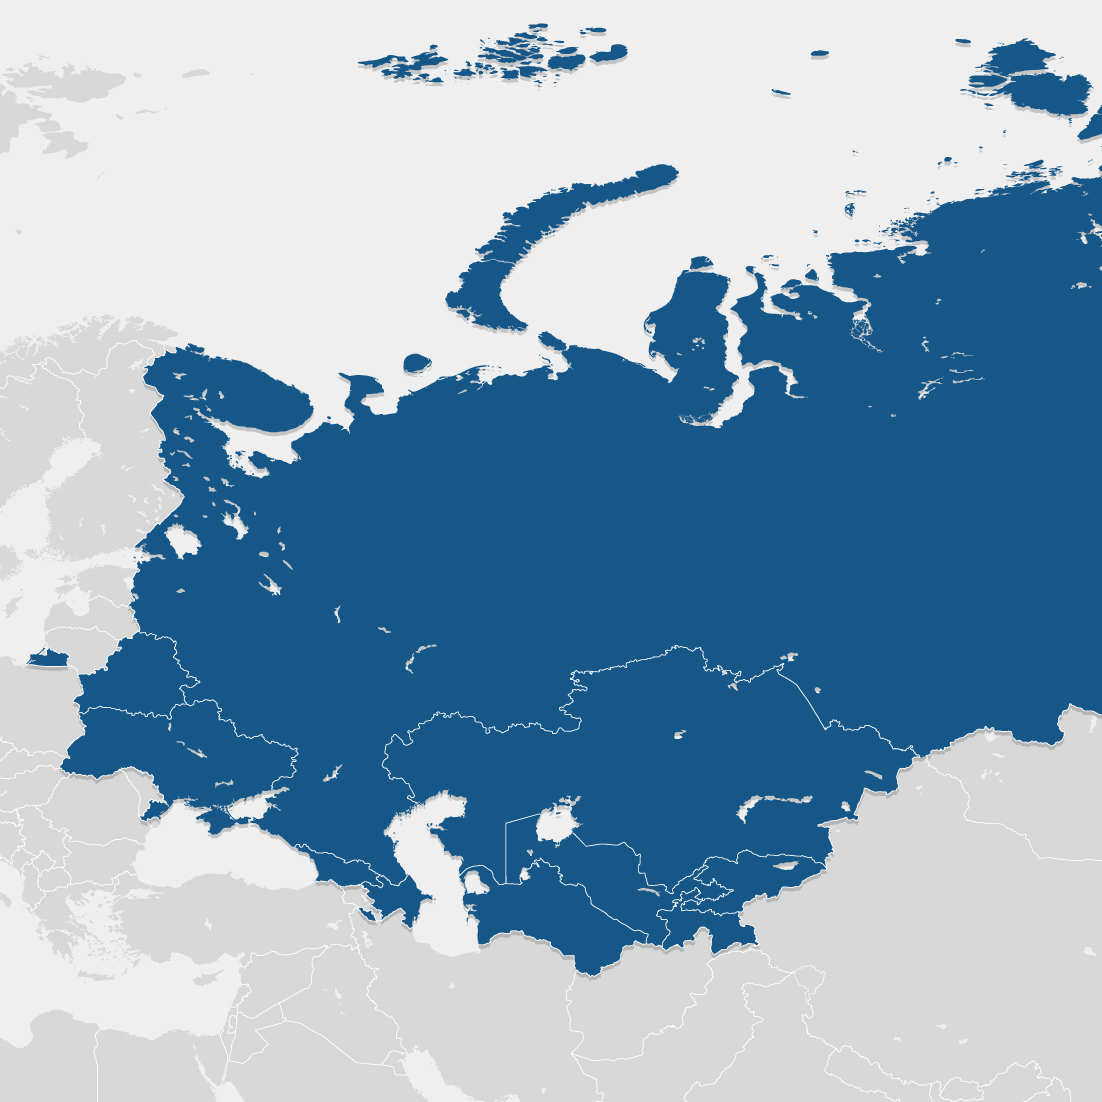 Region-Russia-and-CIS